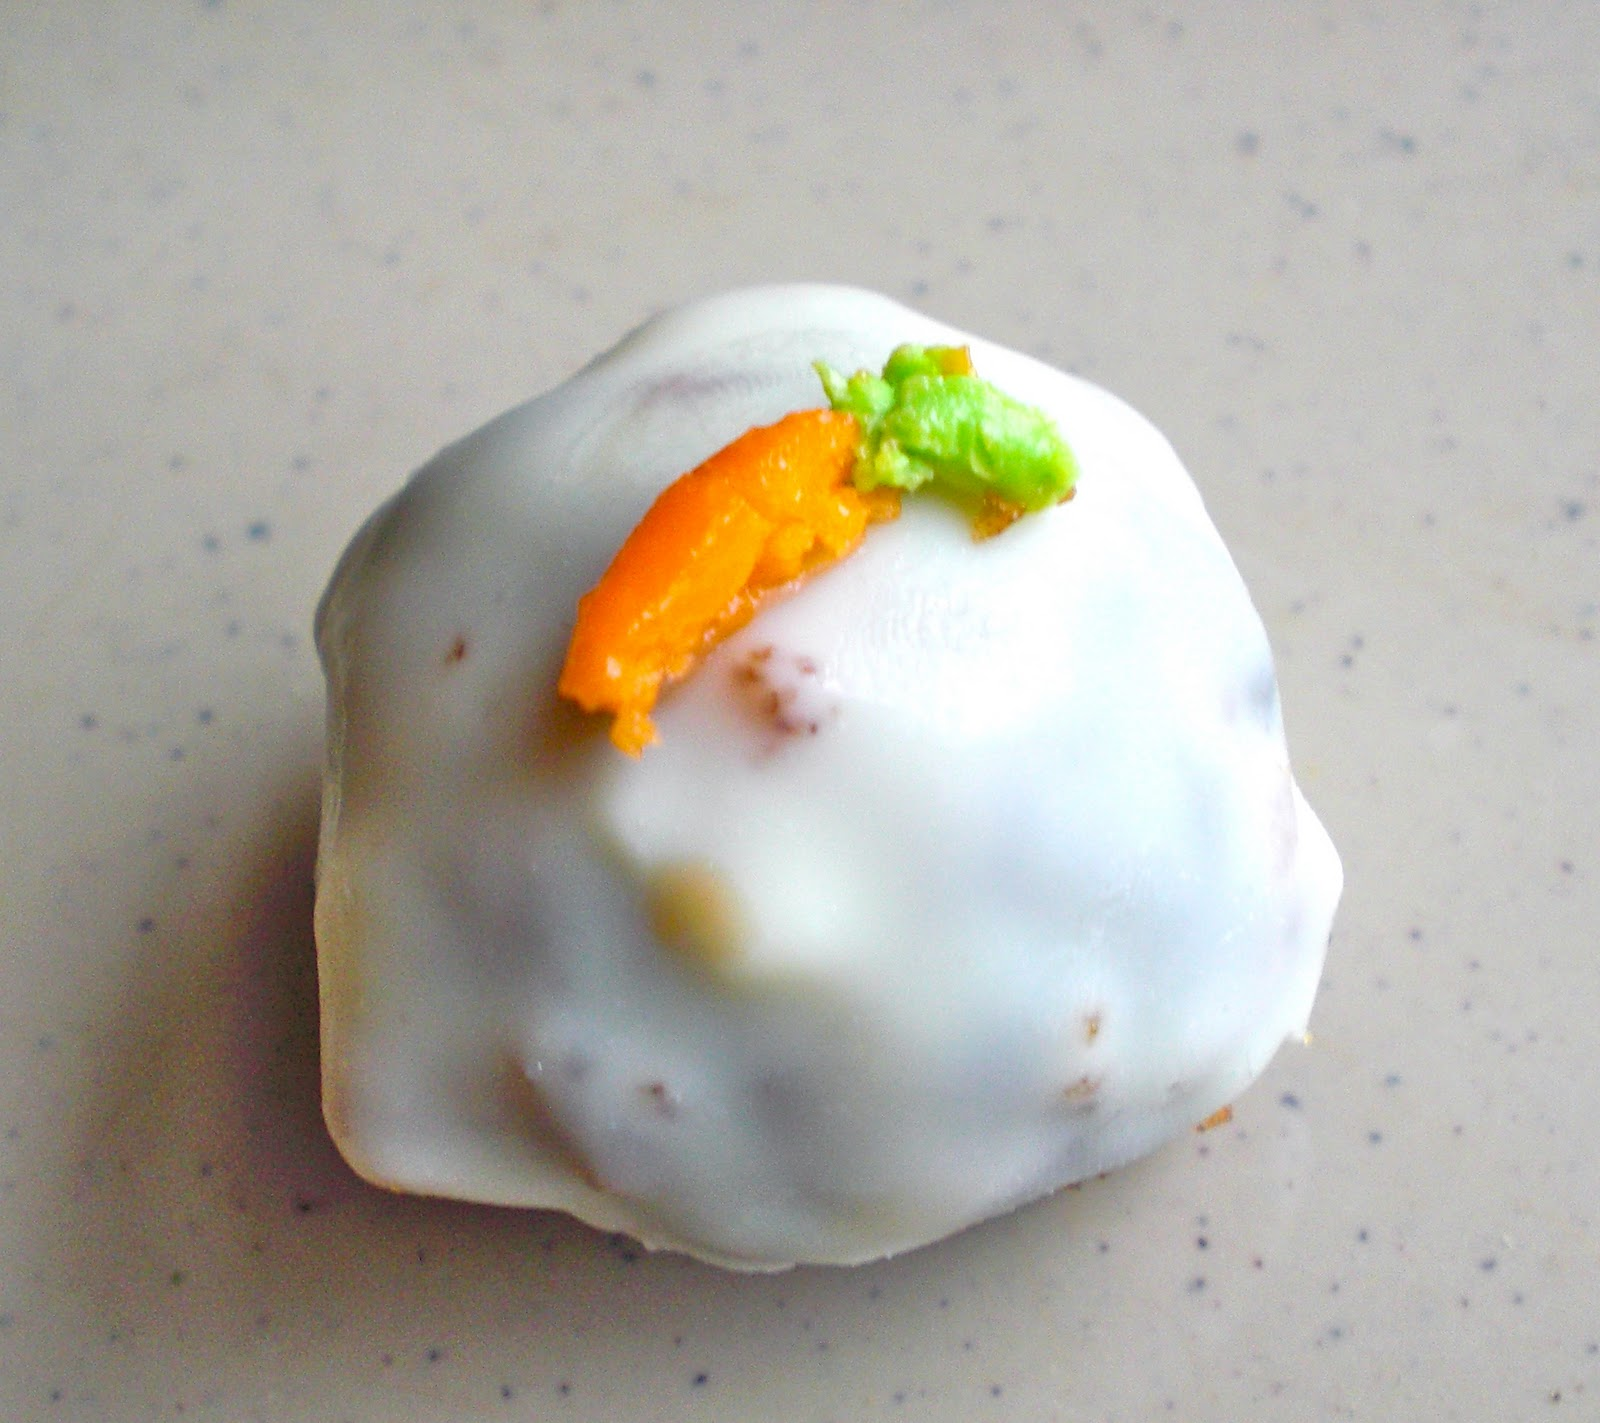 snackology: Carrot Cake Truffles with Cream Cheese Icing Center